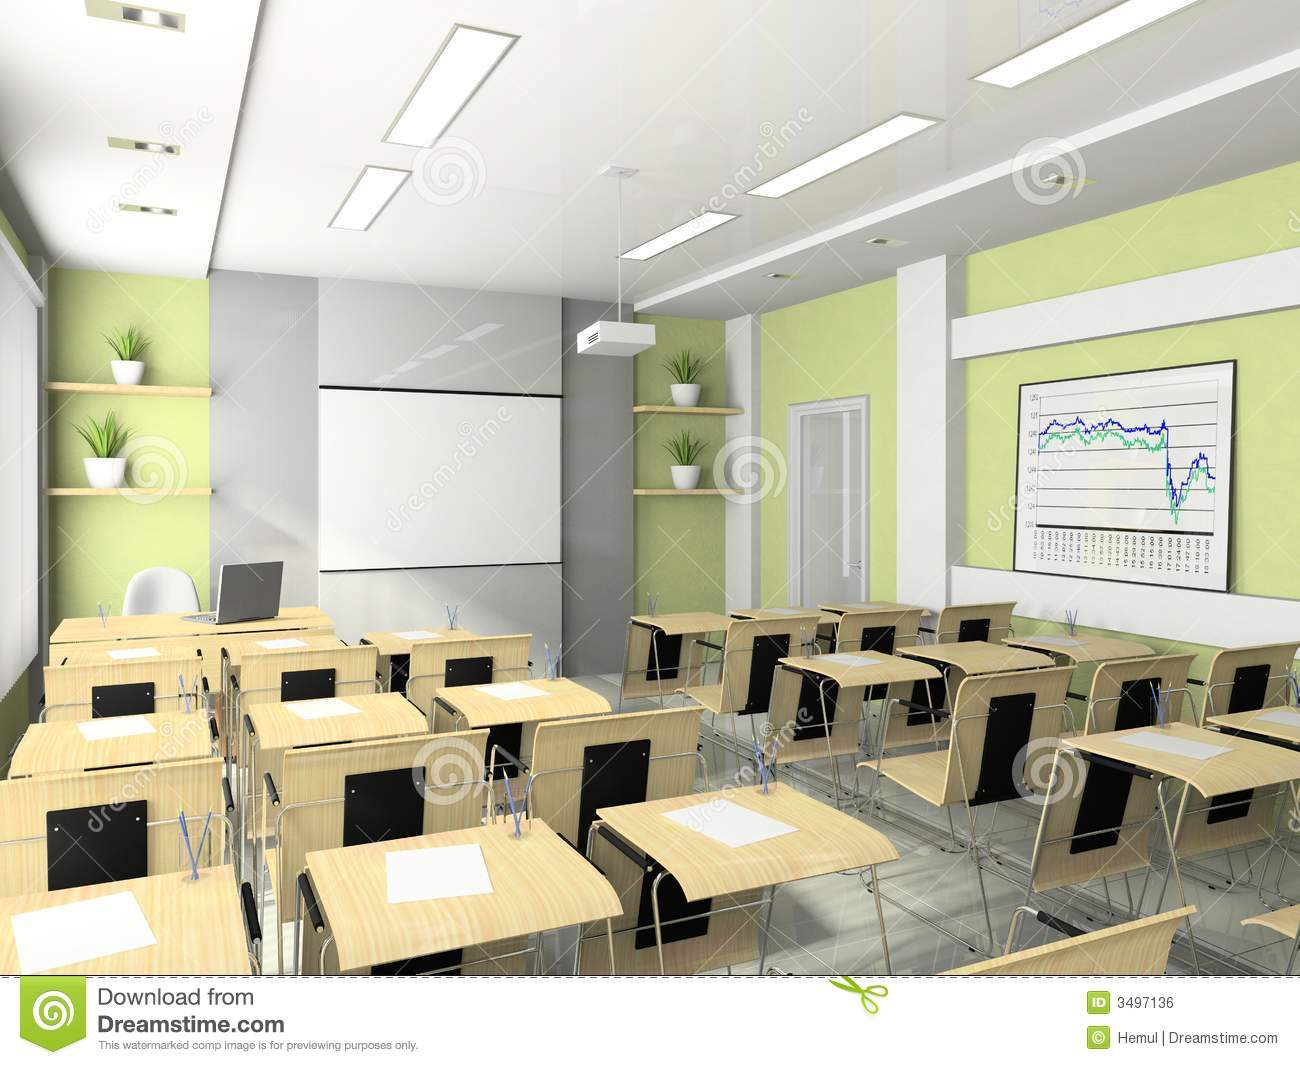 Modern Classroom Training ~ Interior of the lecture room stock illustration